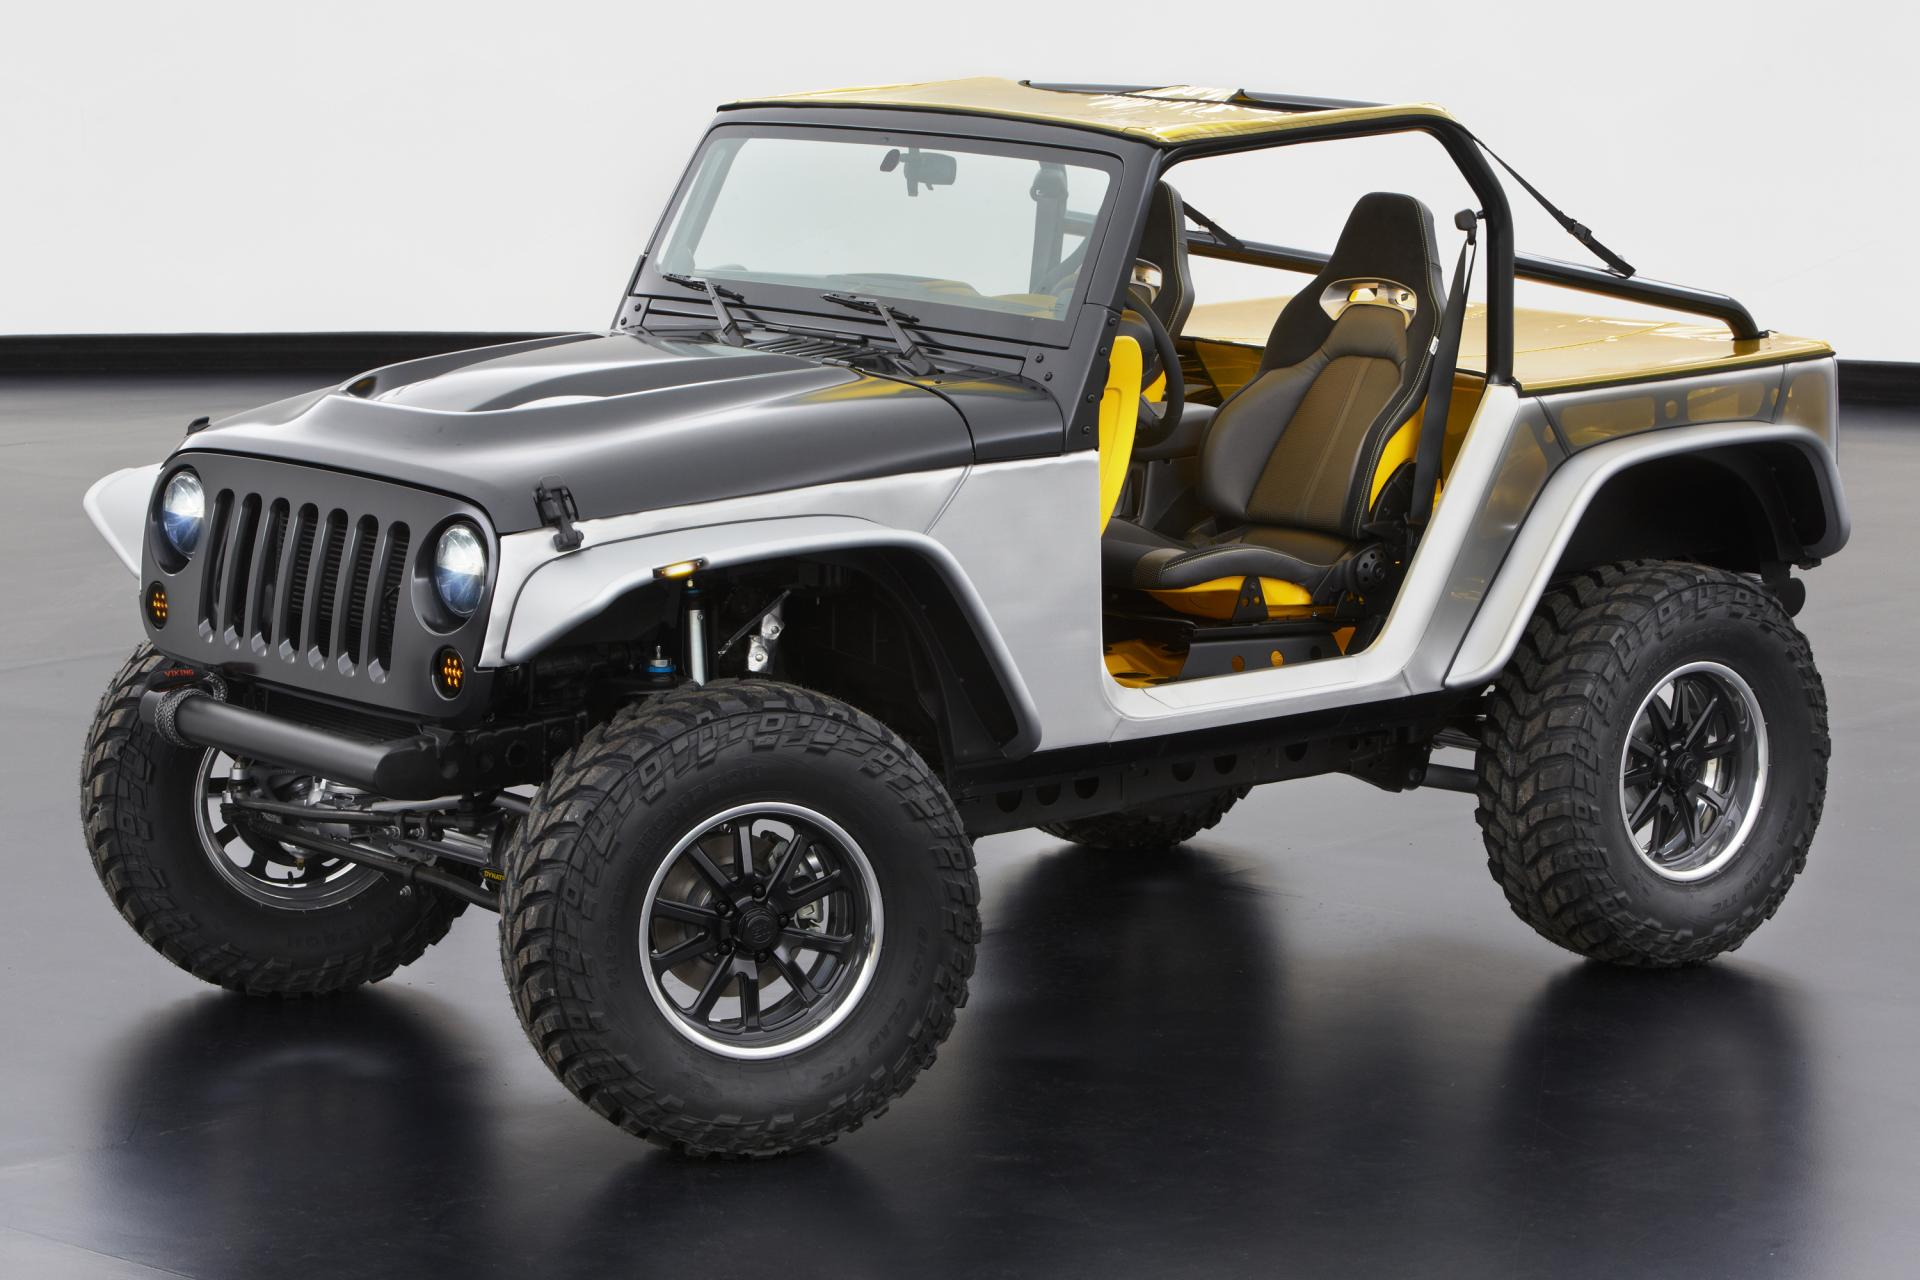 2013 Jeep Wrangler Stitch News and Information